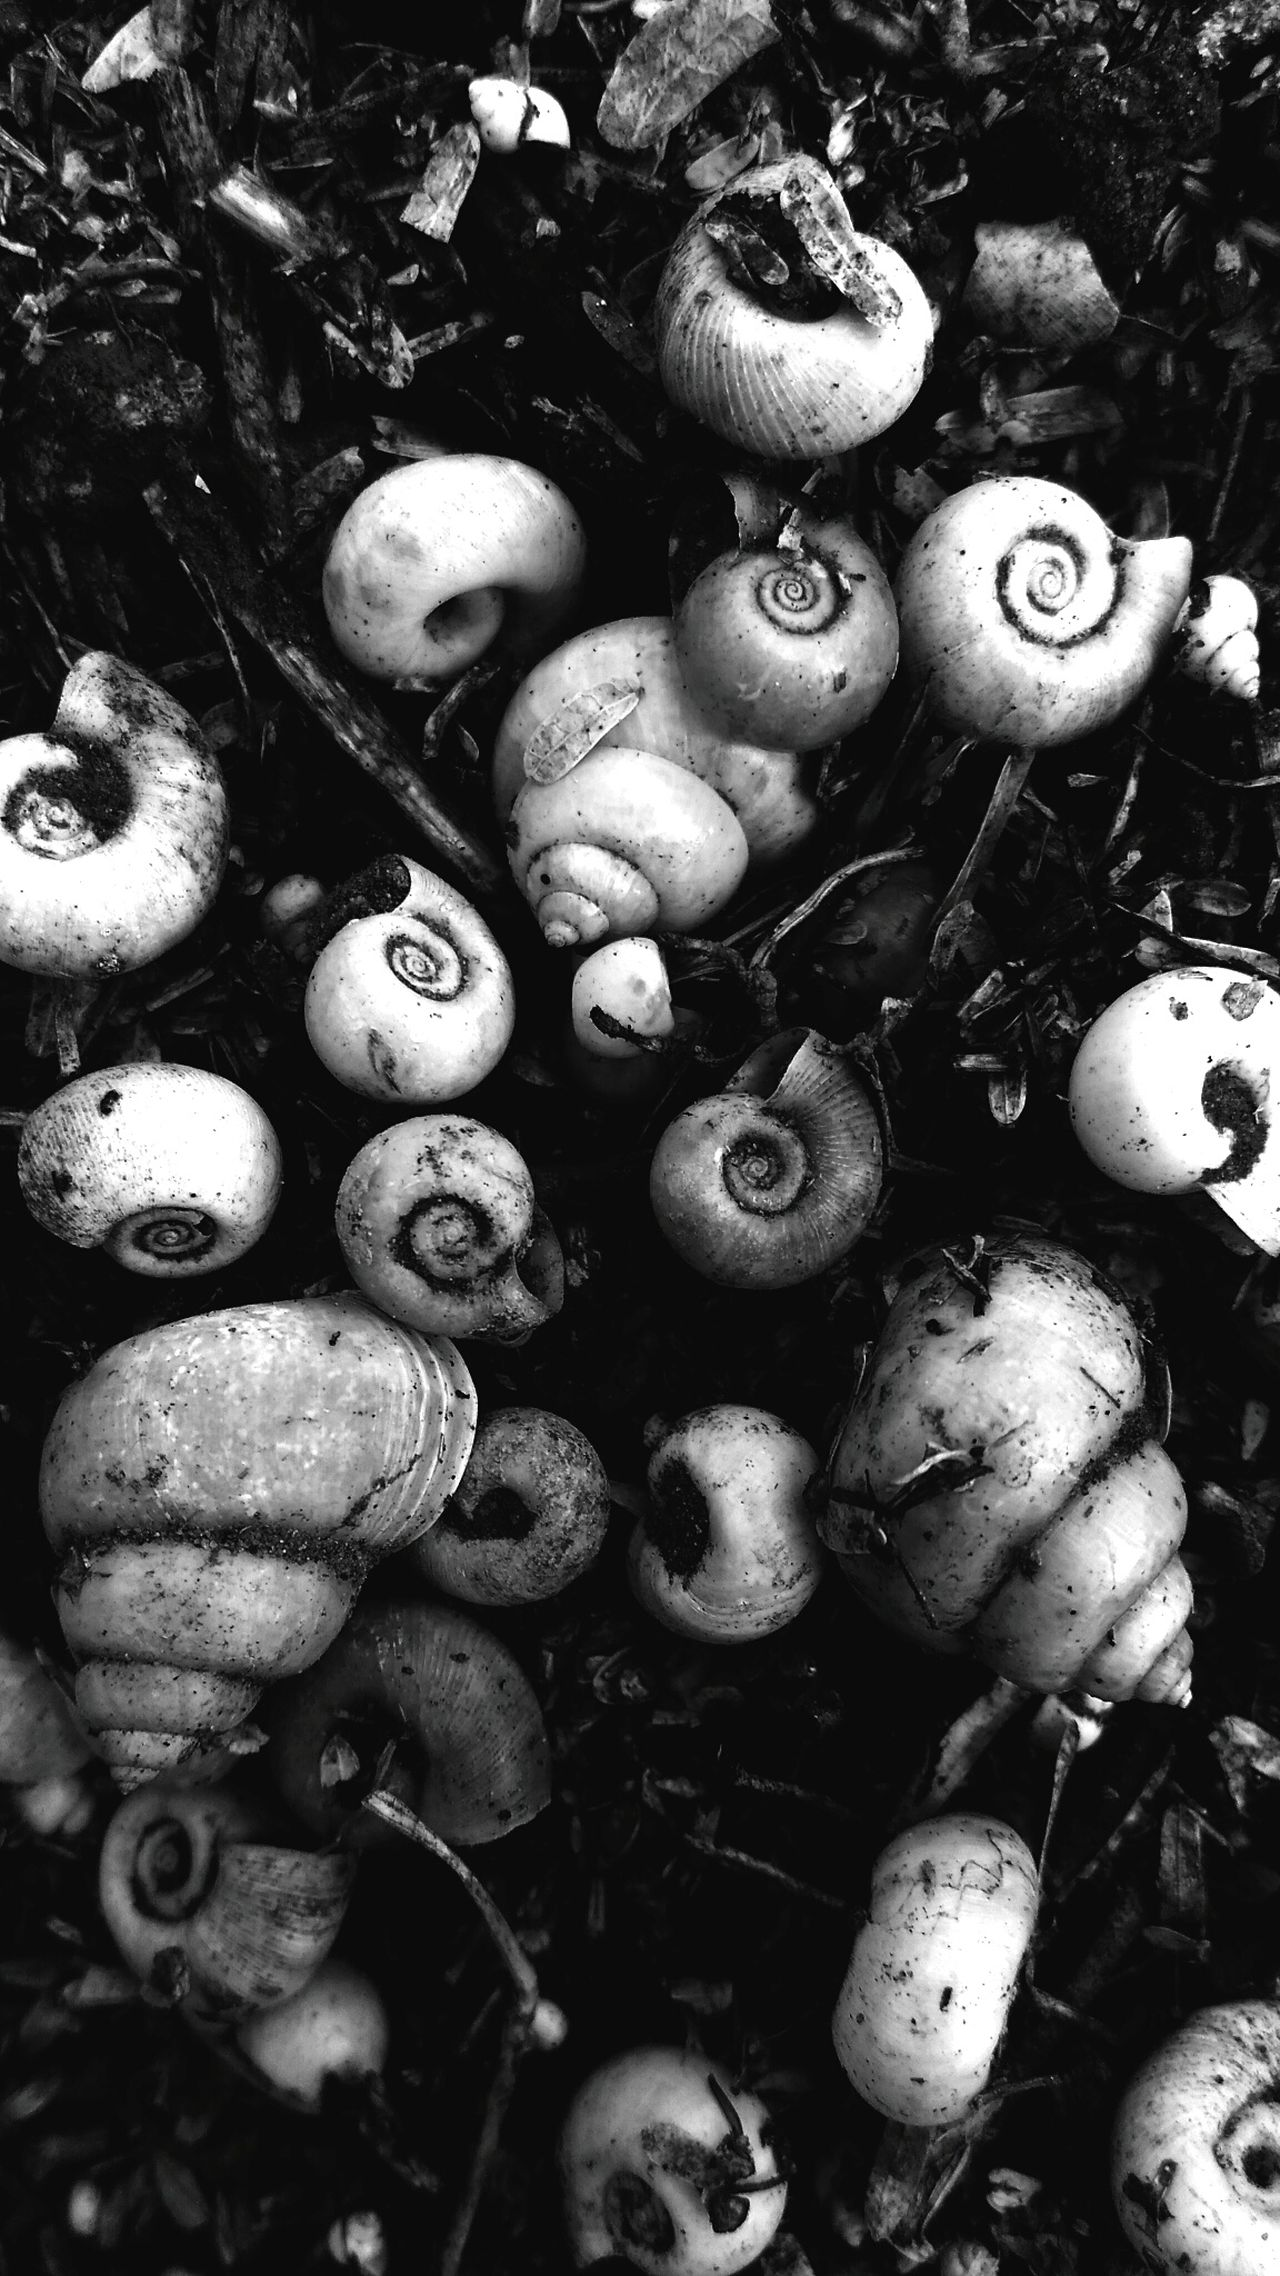 Black And White Bnw Bnw_friday_eyeemchallenge Bnw_collection Bnw_captures Bnw_society Bnw_magazine Conceptualphotography Snail Photography Snail Shells Dead Death